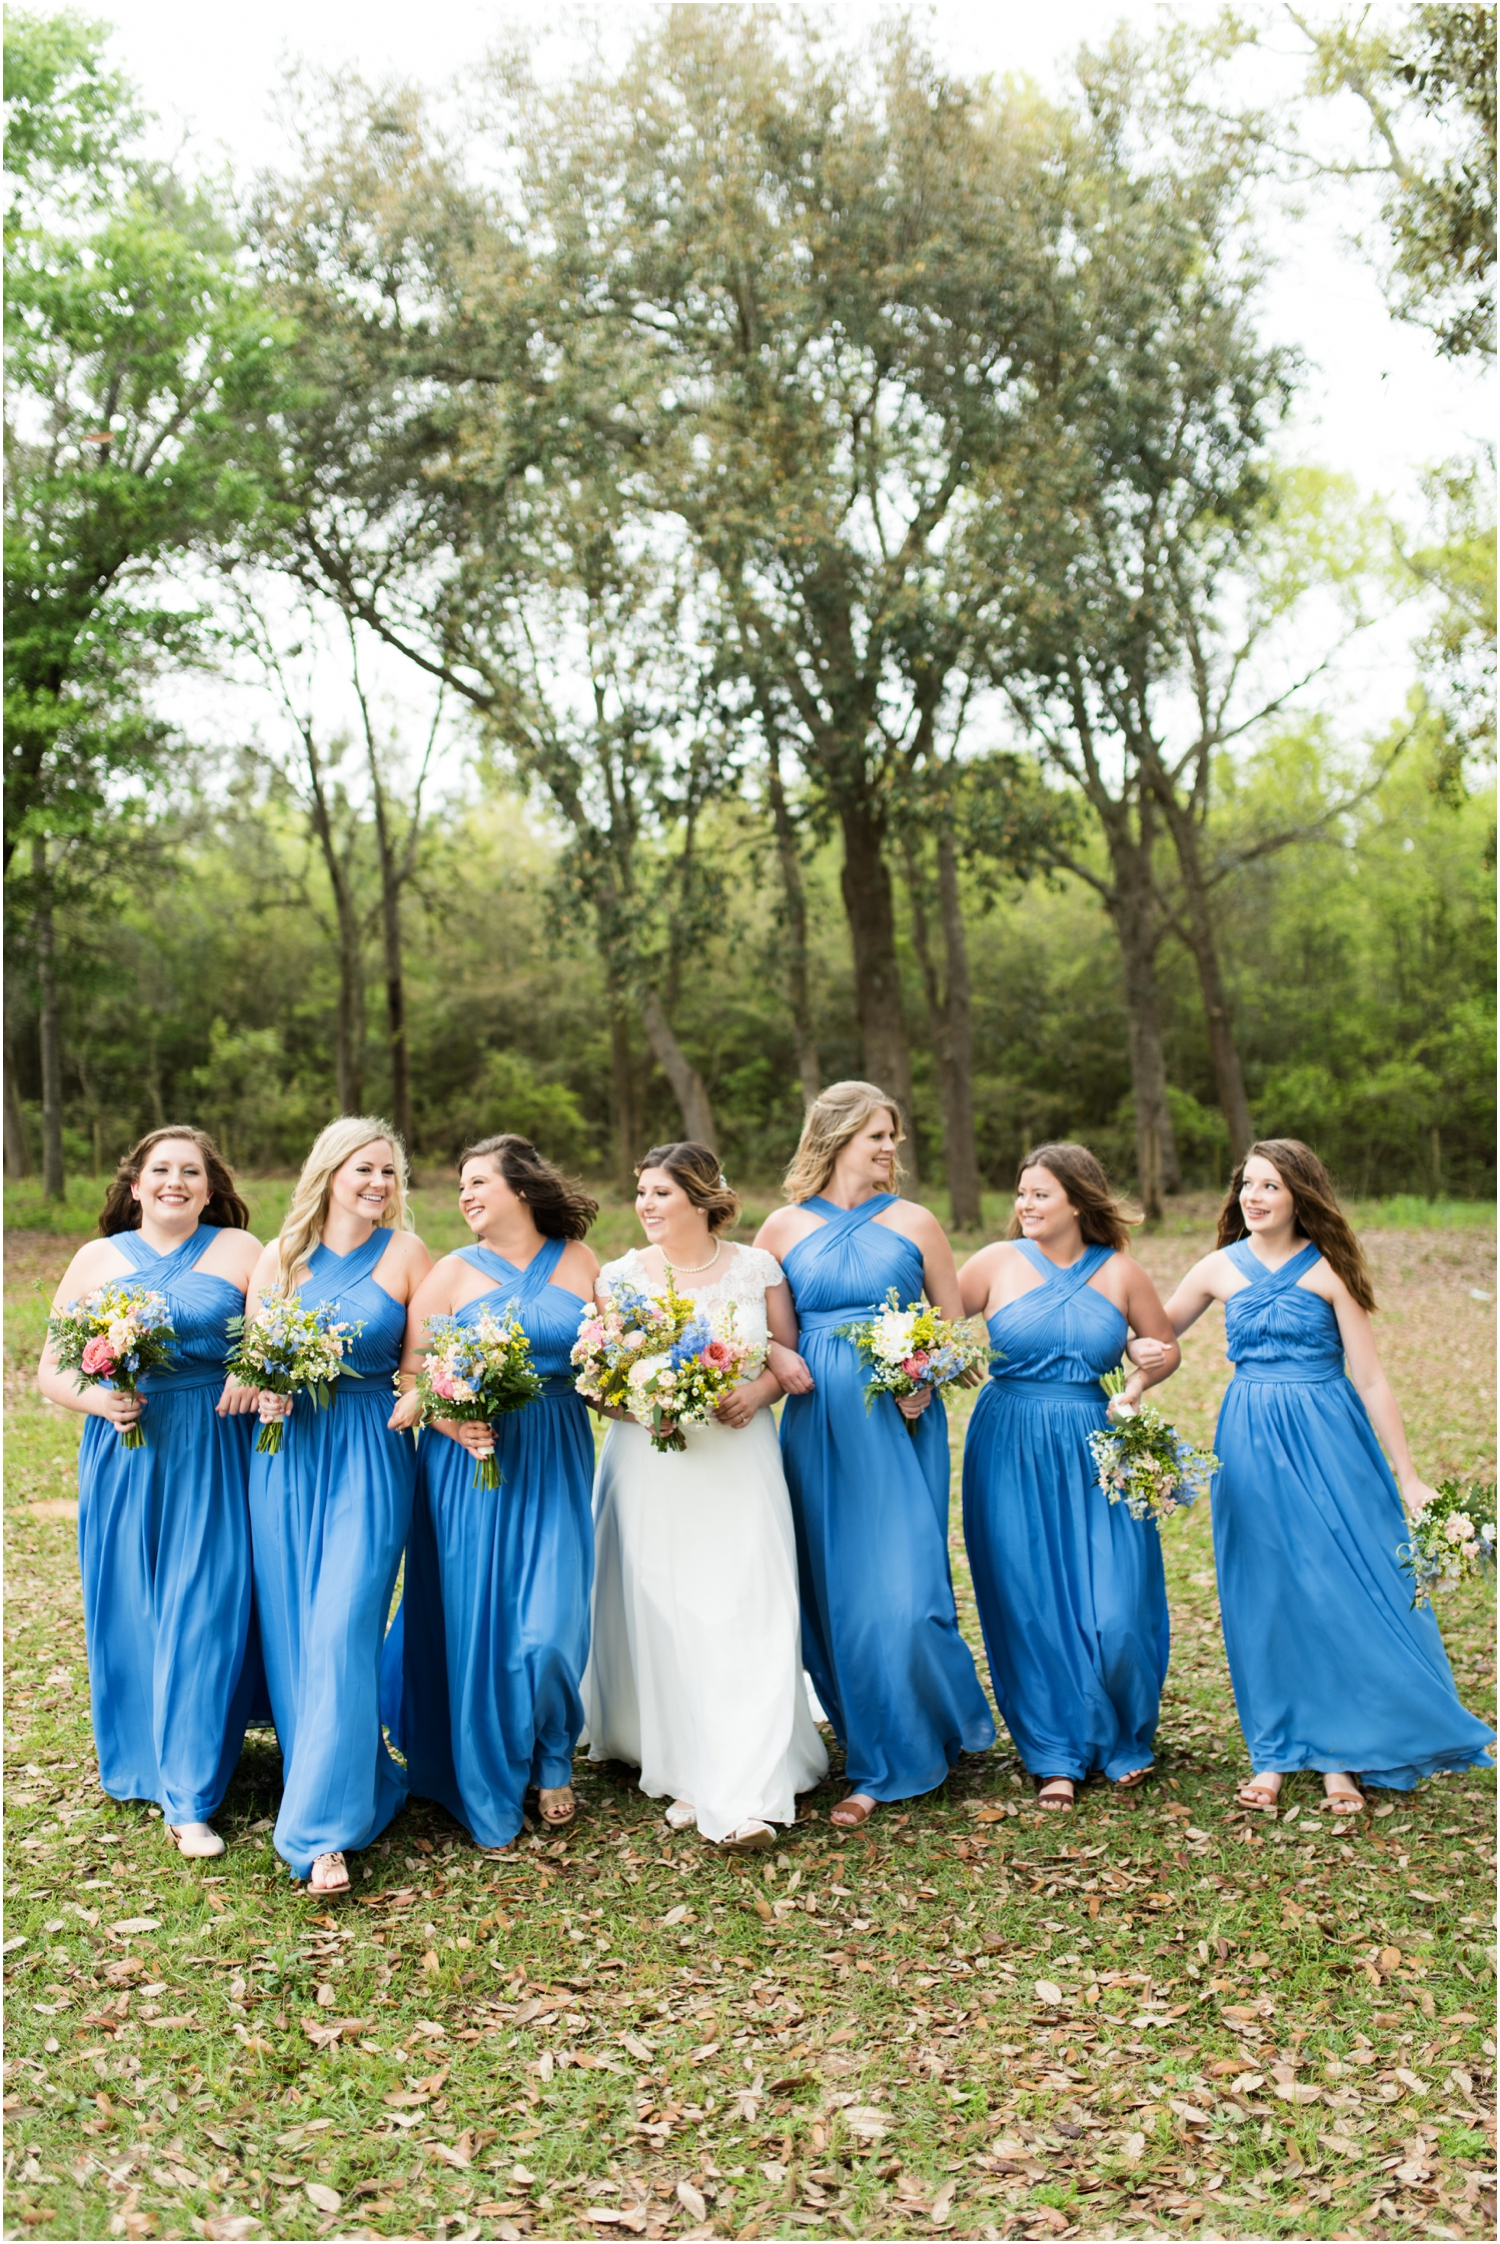 Sowell Farms Milton Florida Rustic Woodsy Barn Wedding Photographer bridesmaids bride bridal party supposey